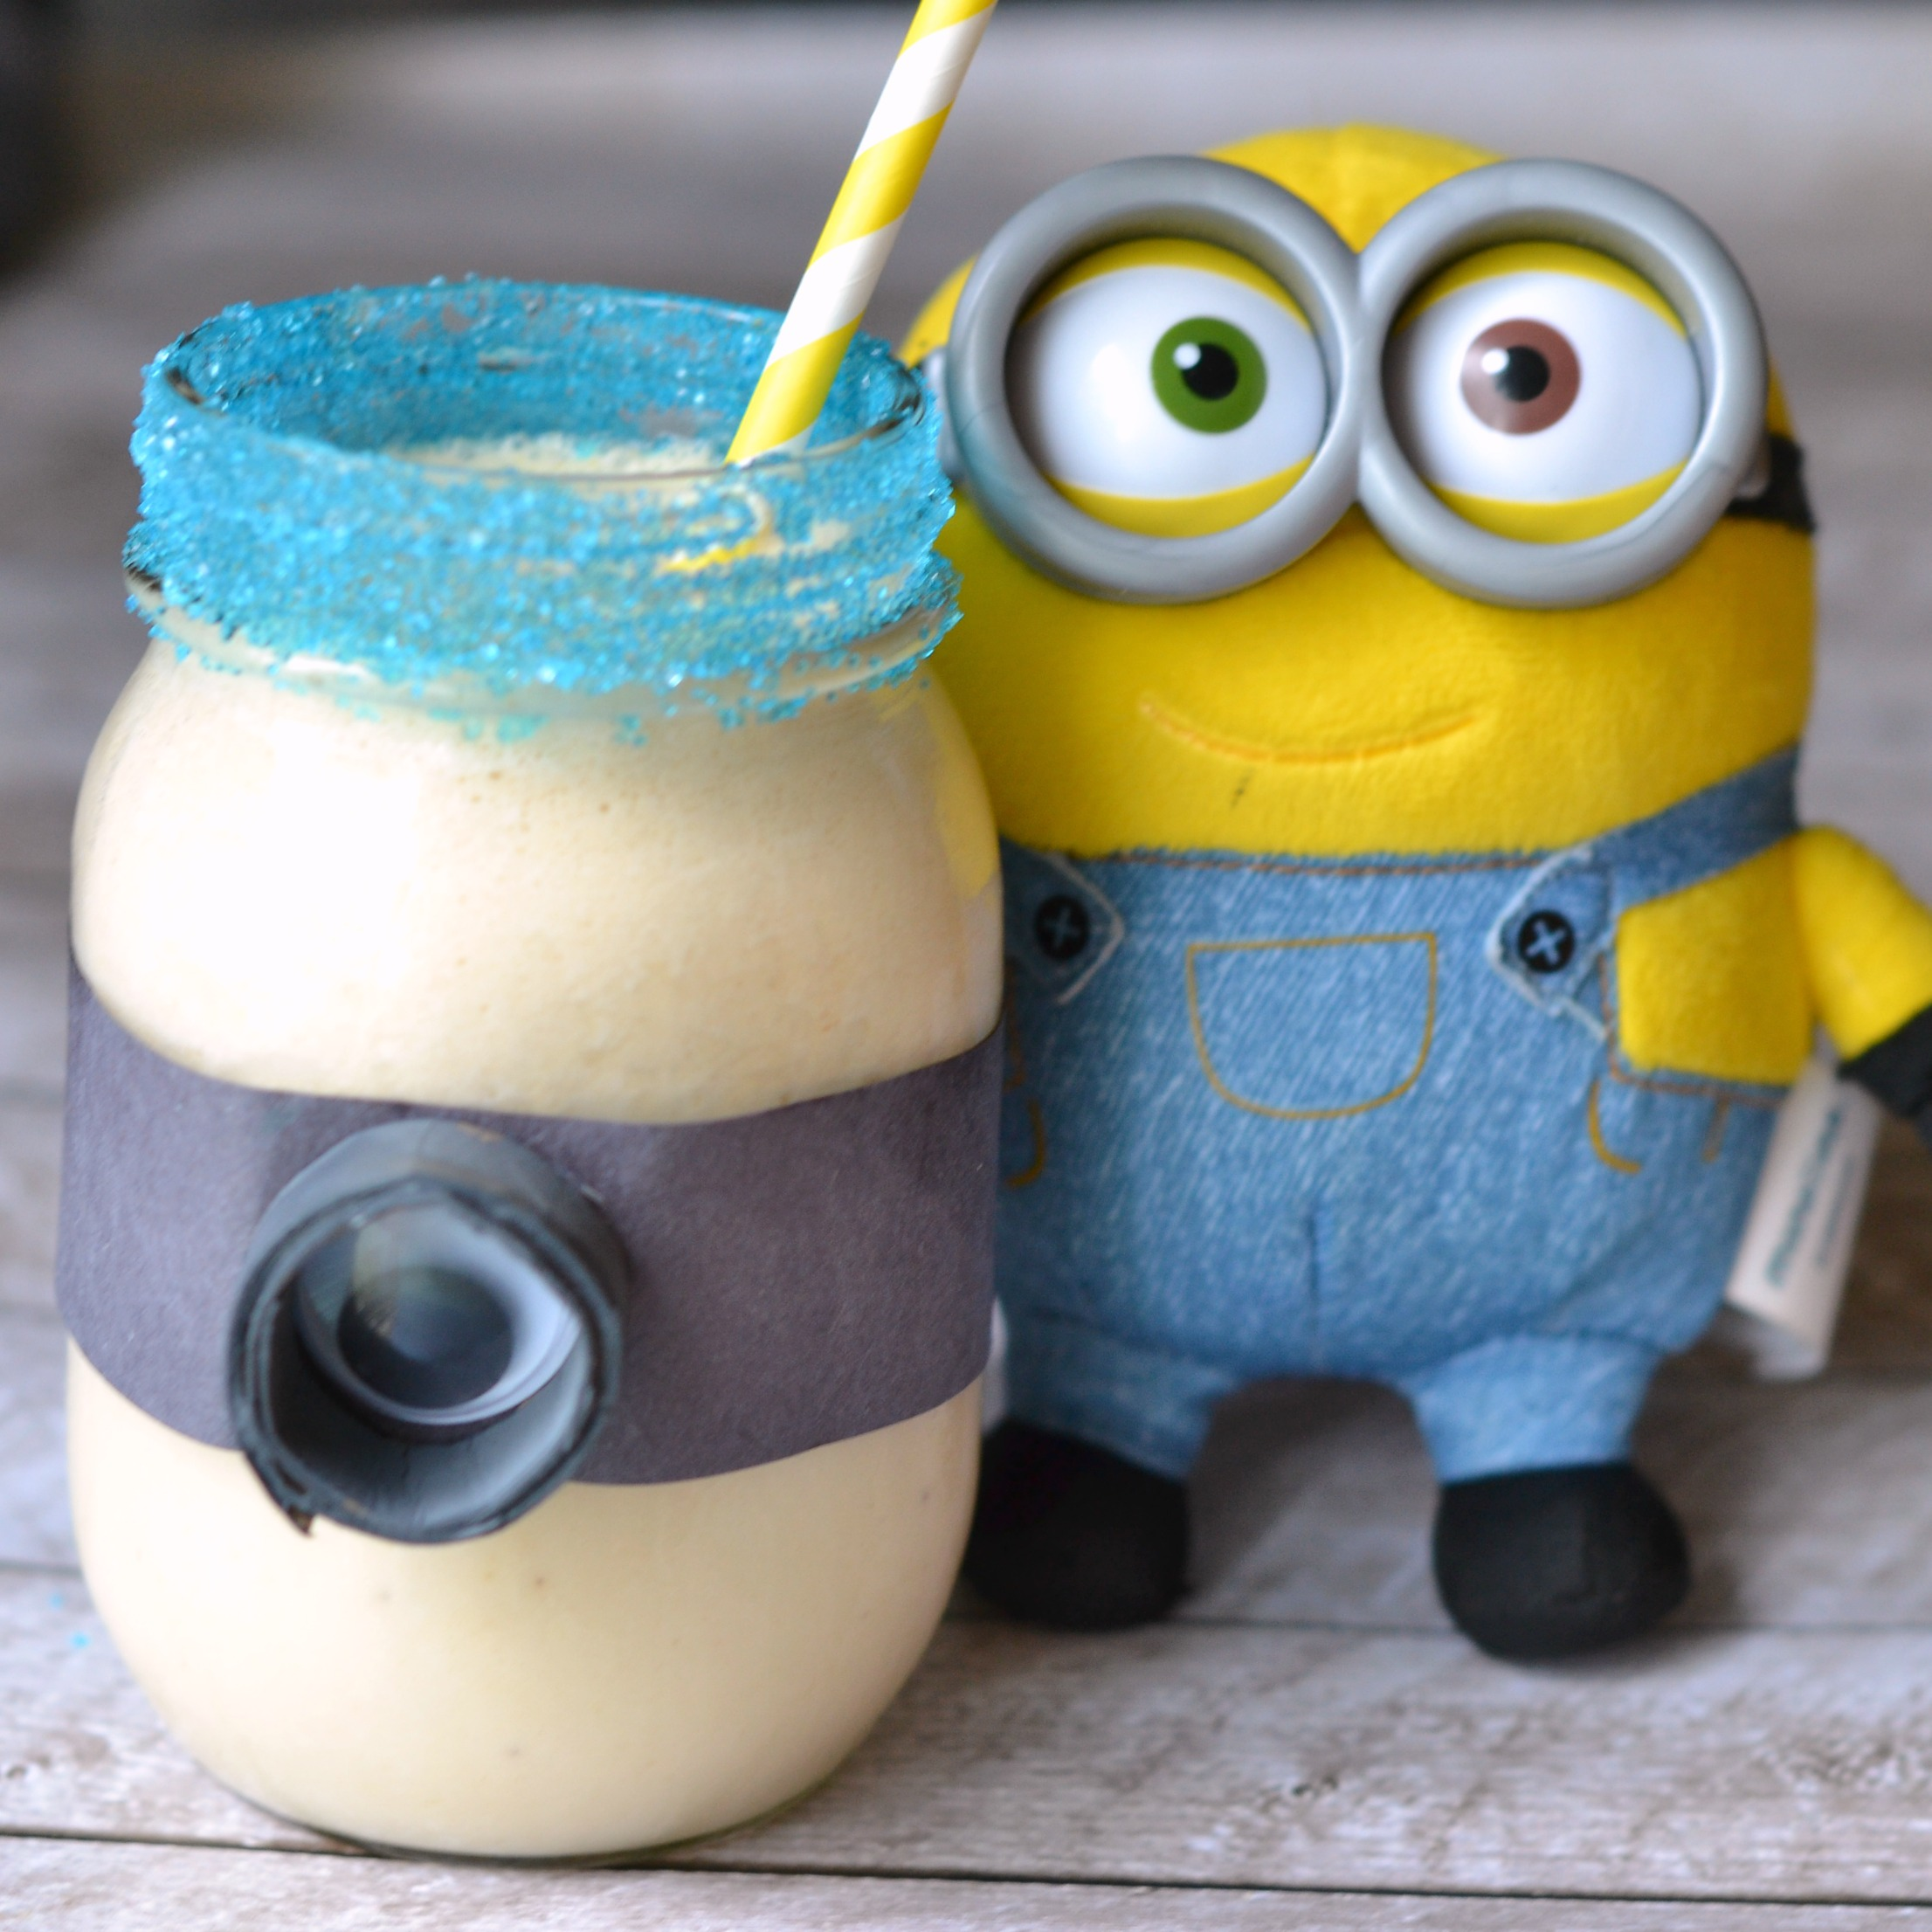 Minion Smoothie (a.k.a. Banana Peanut Butter Smoothie)